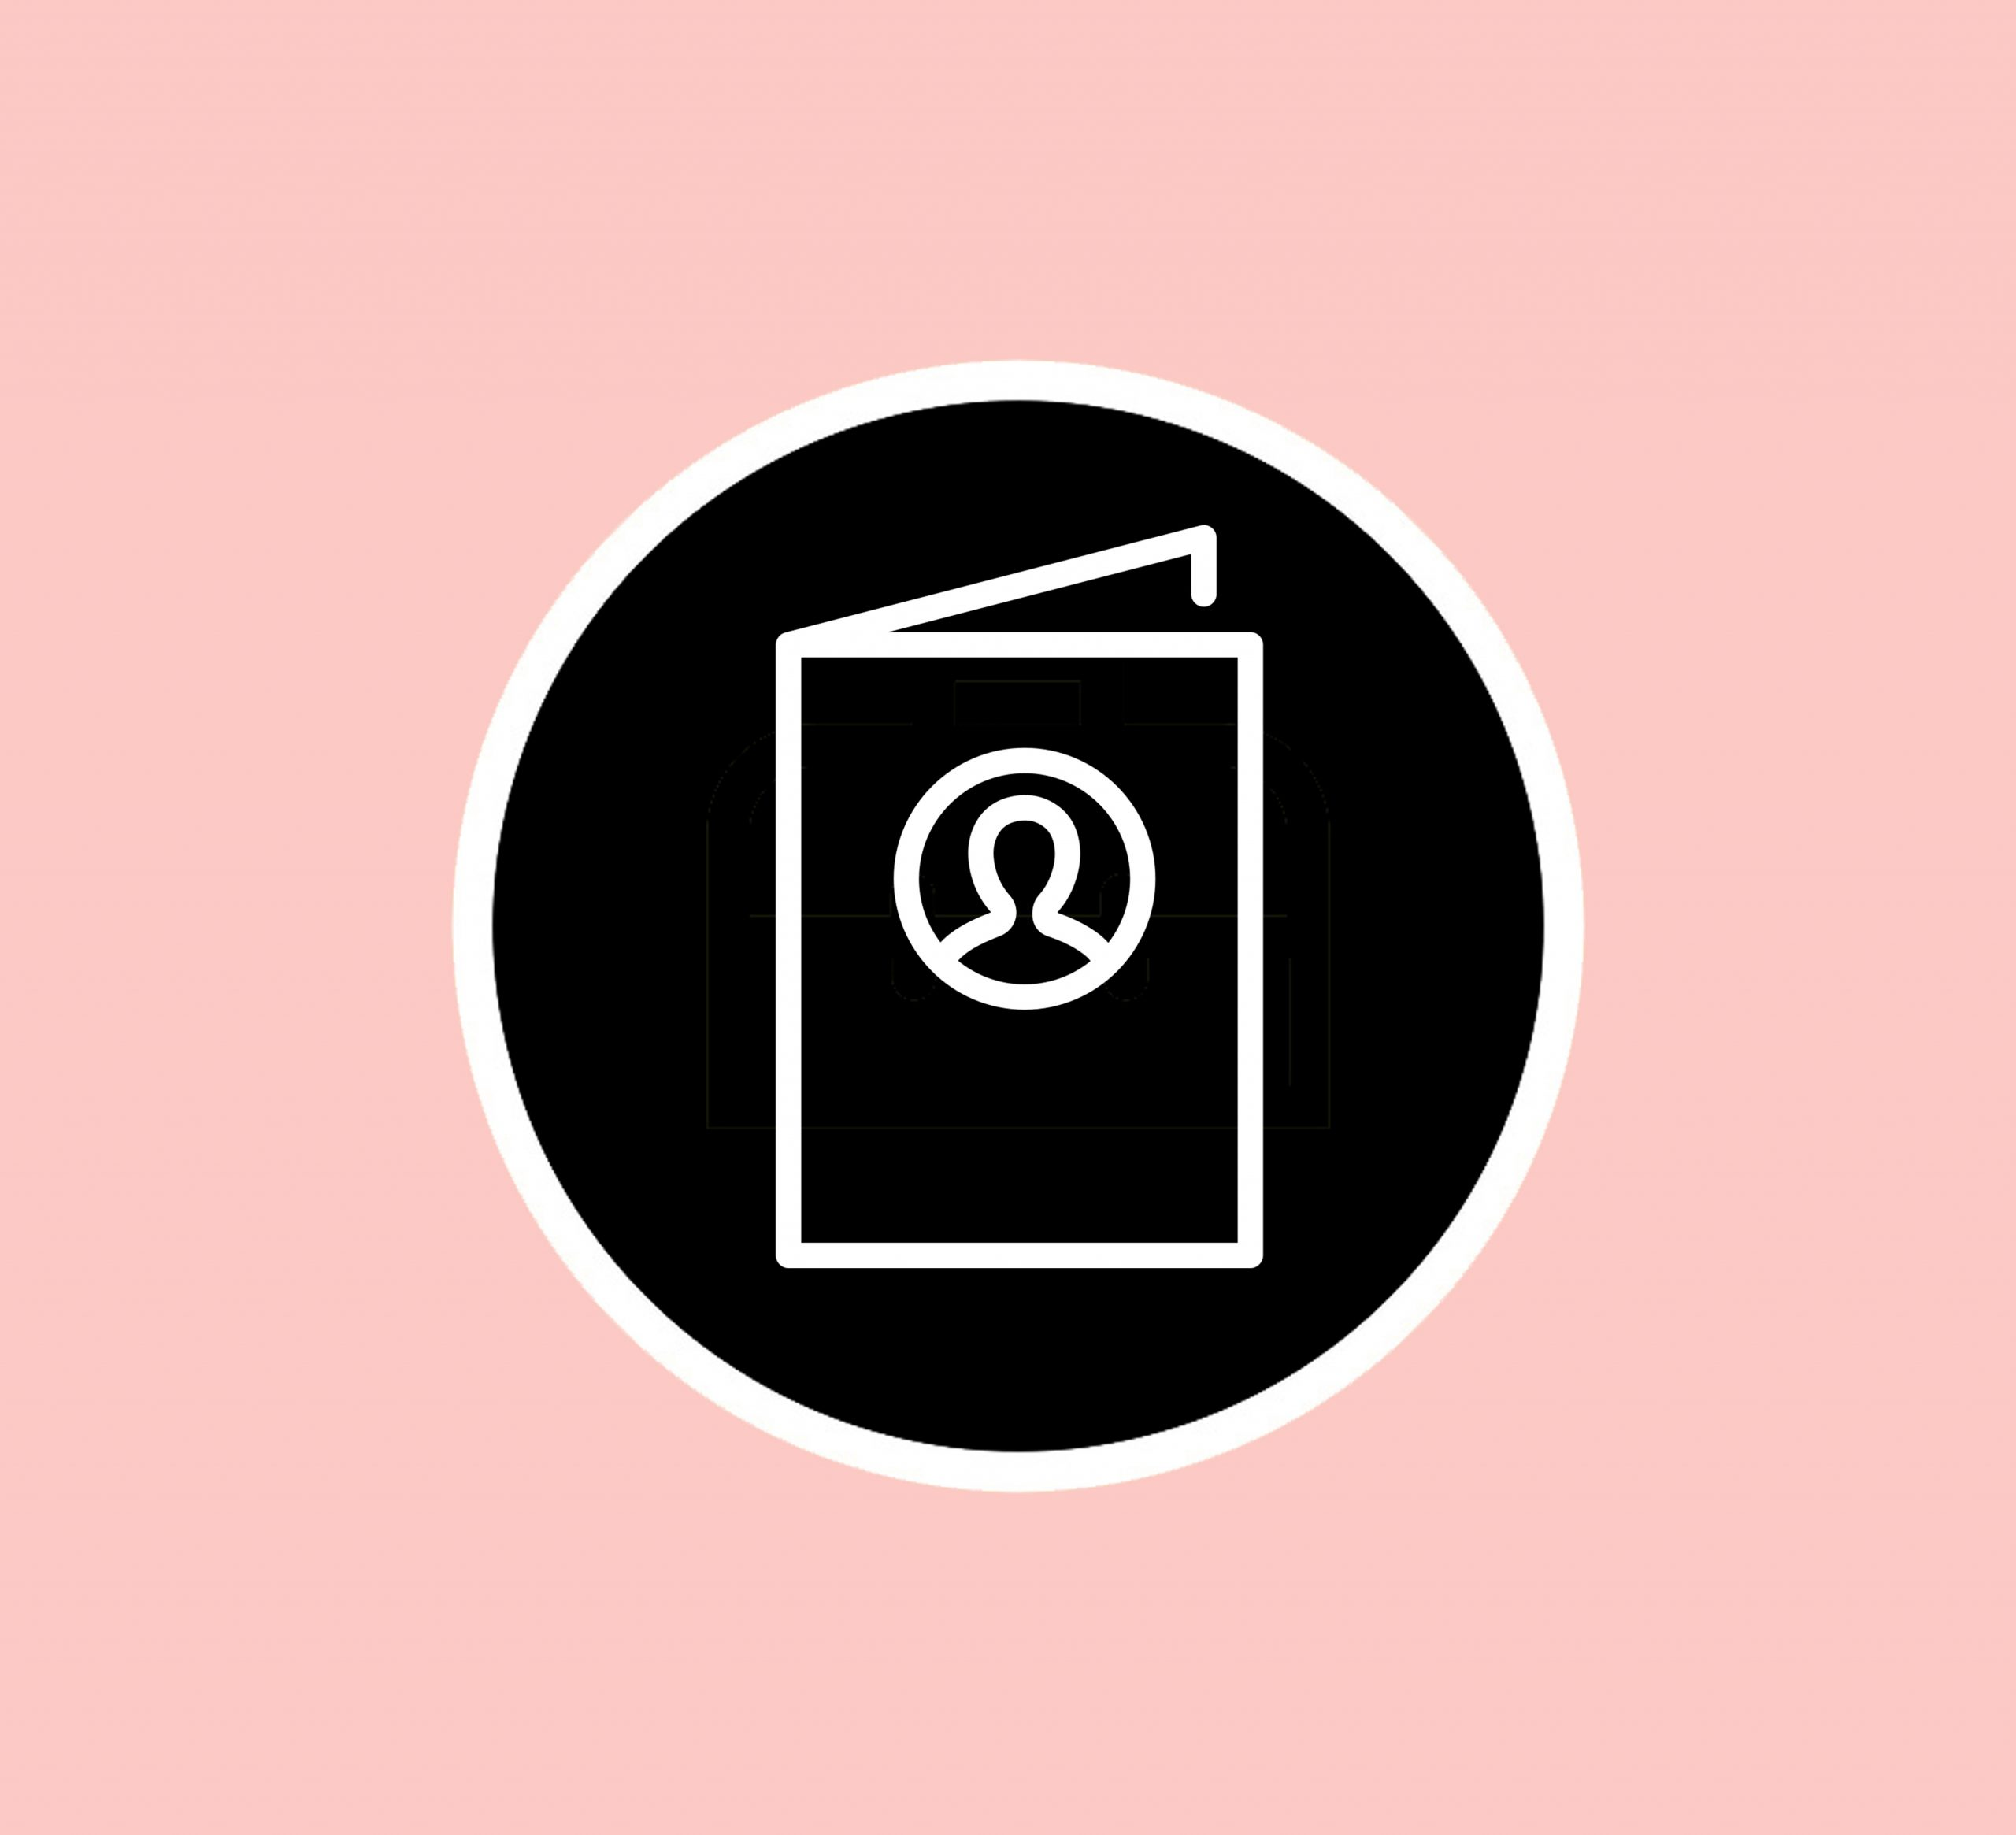 Simple black and white booklet logo, with a pink background